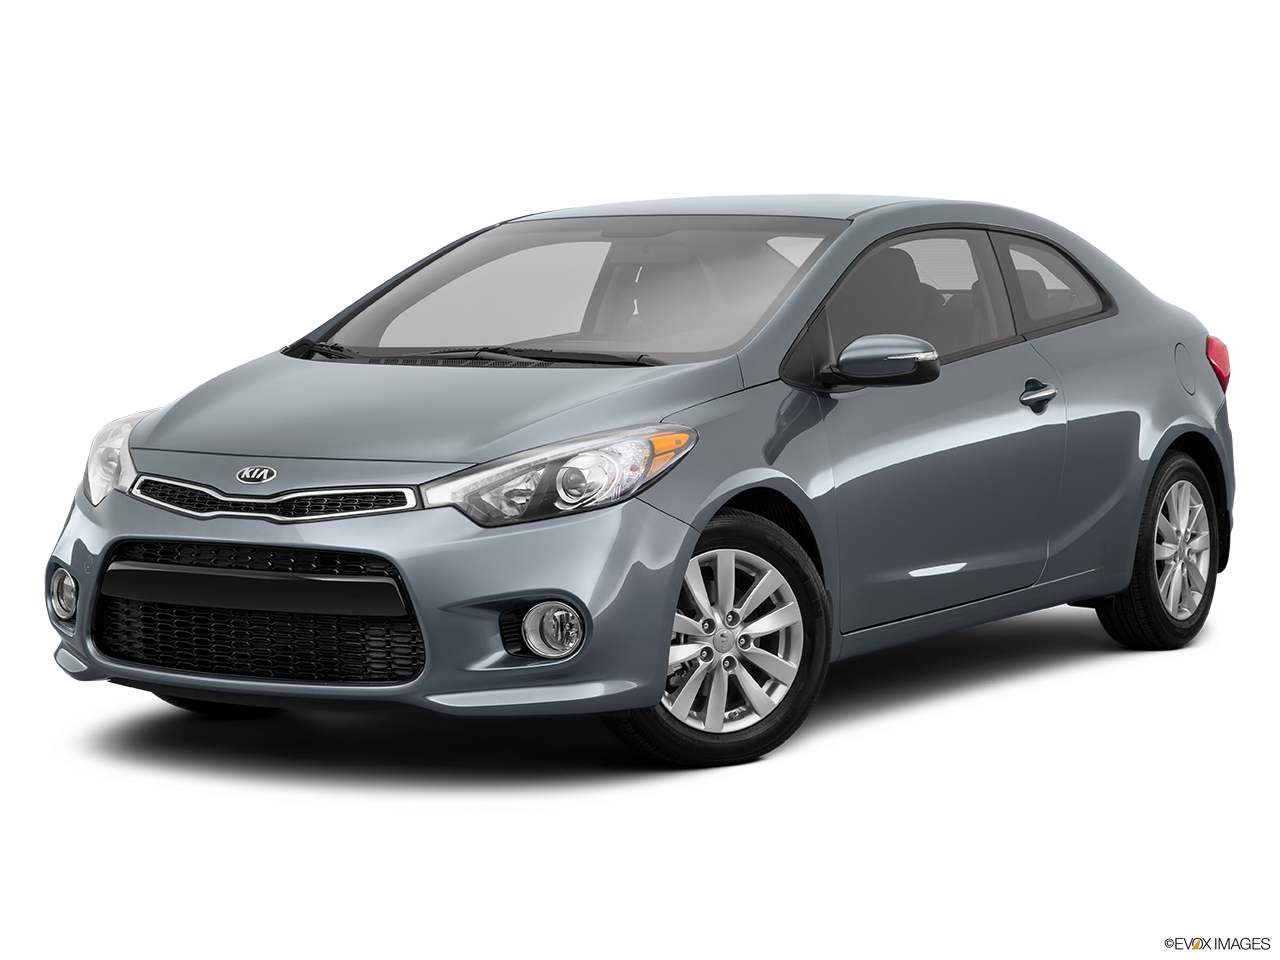 2015 kia forte koup dealer serving san bernardino valley hi kia. Black Bedroom Furniture Sets. Home Design Ideas